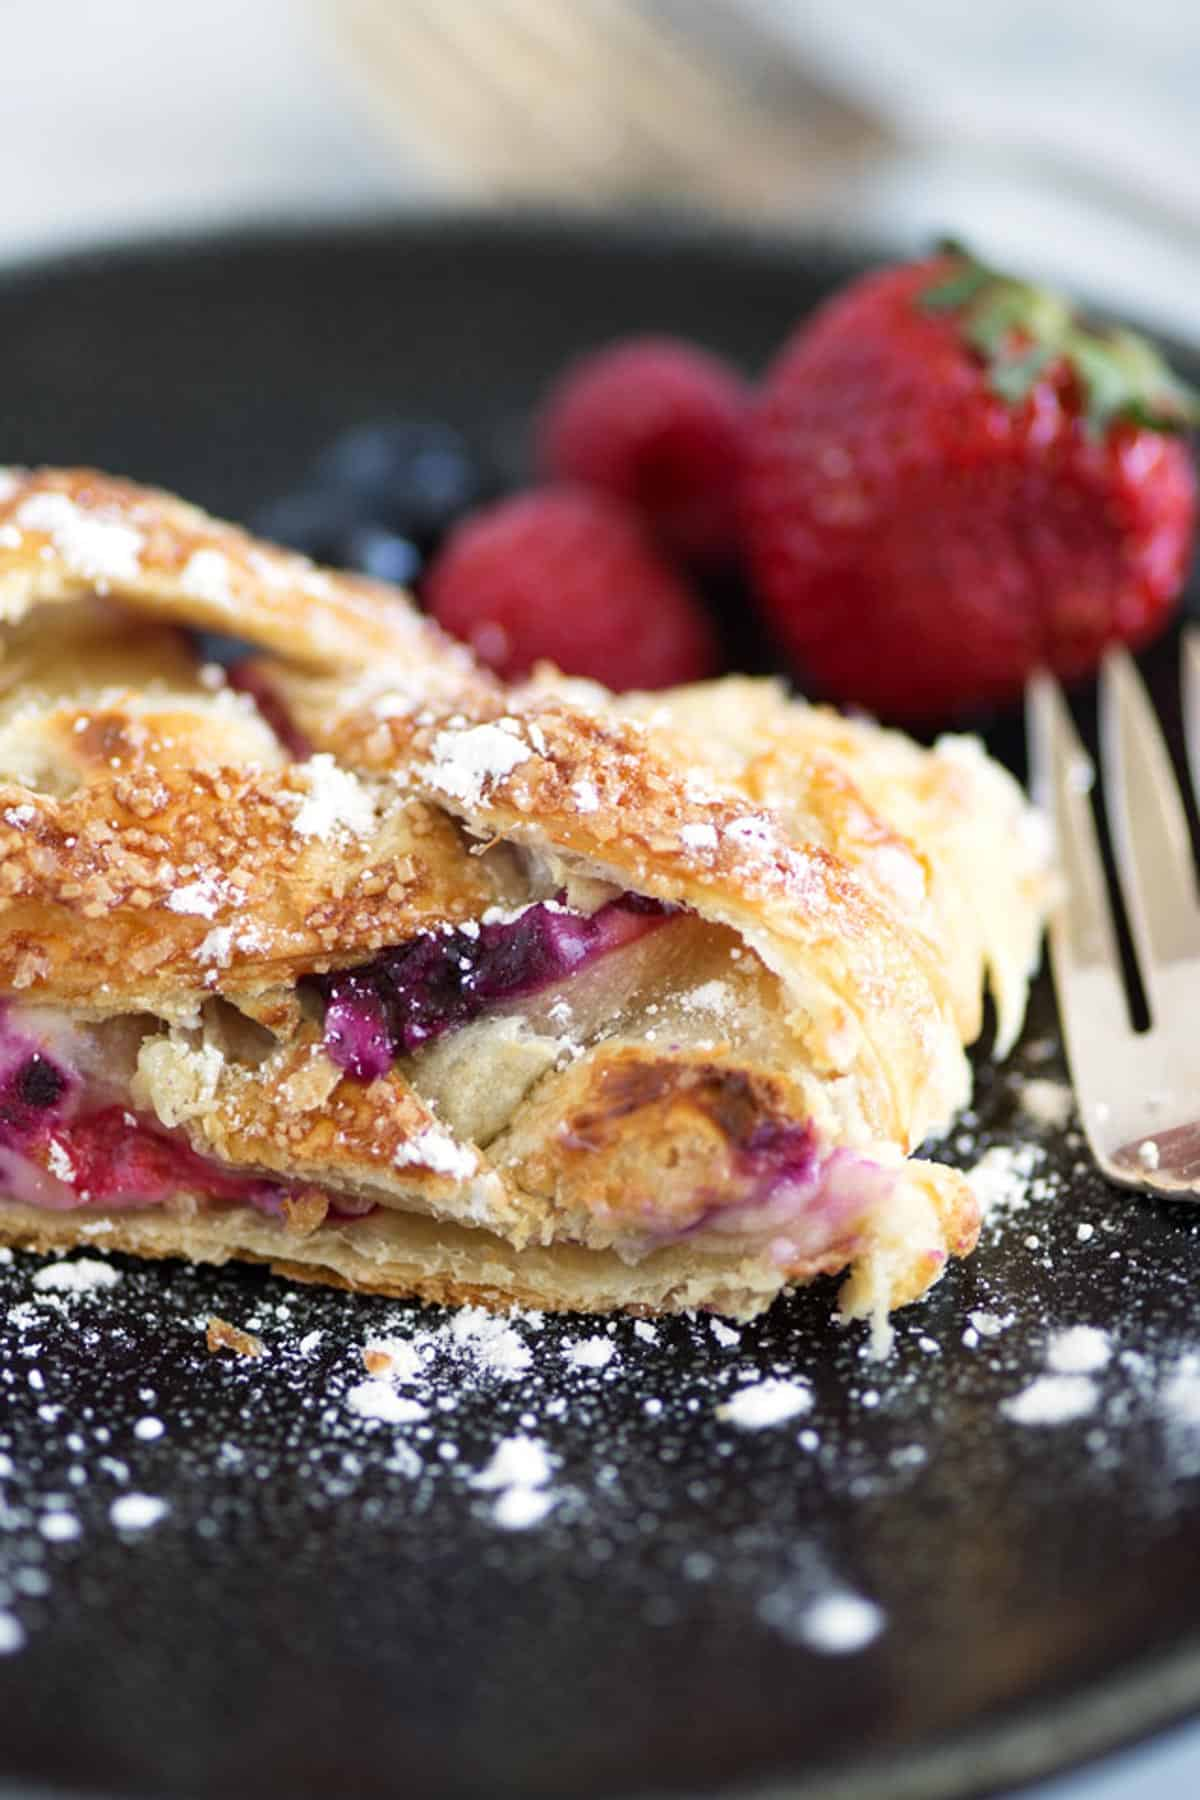 A slice of berry pastry braid with powdered sugar.